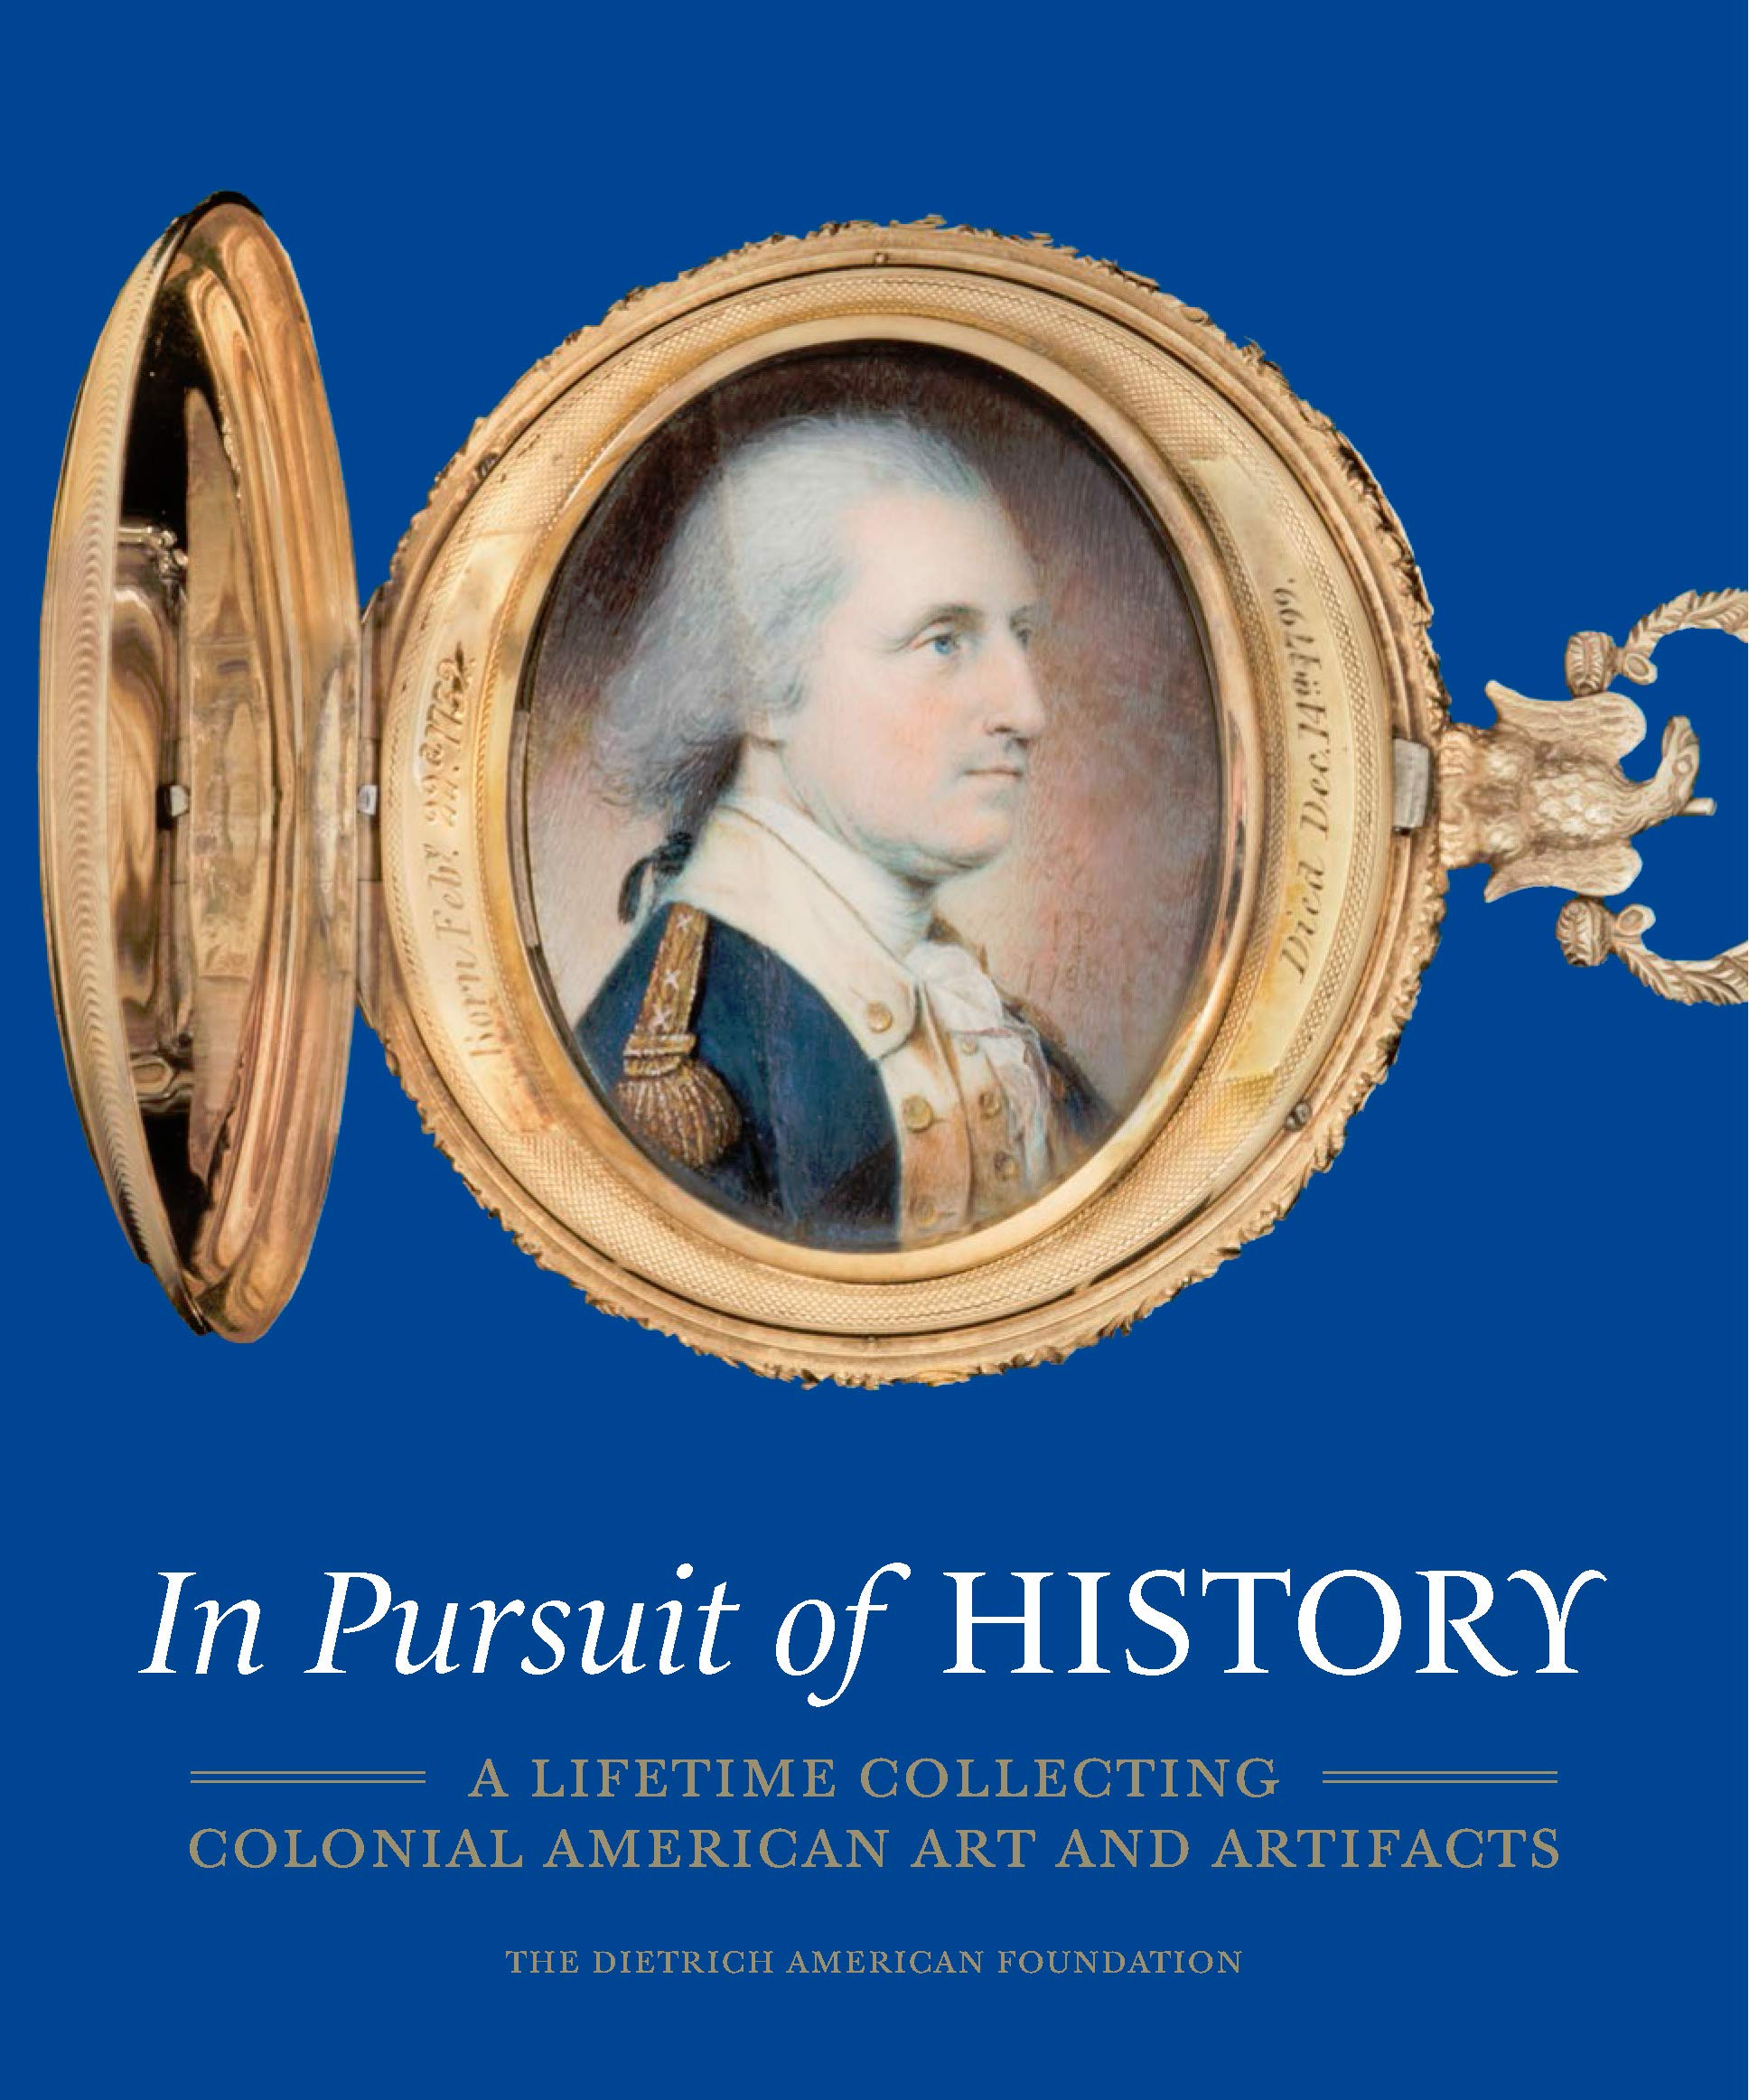 Author Event: In Pursuit of History with H. Richard Dietrich III